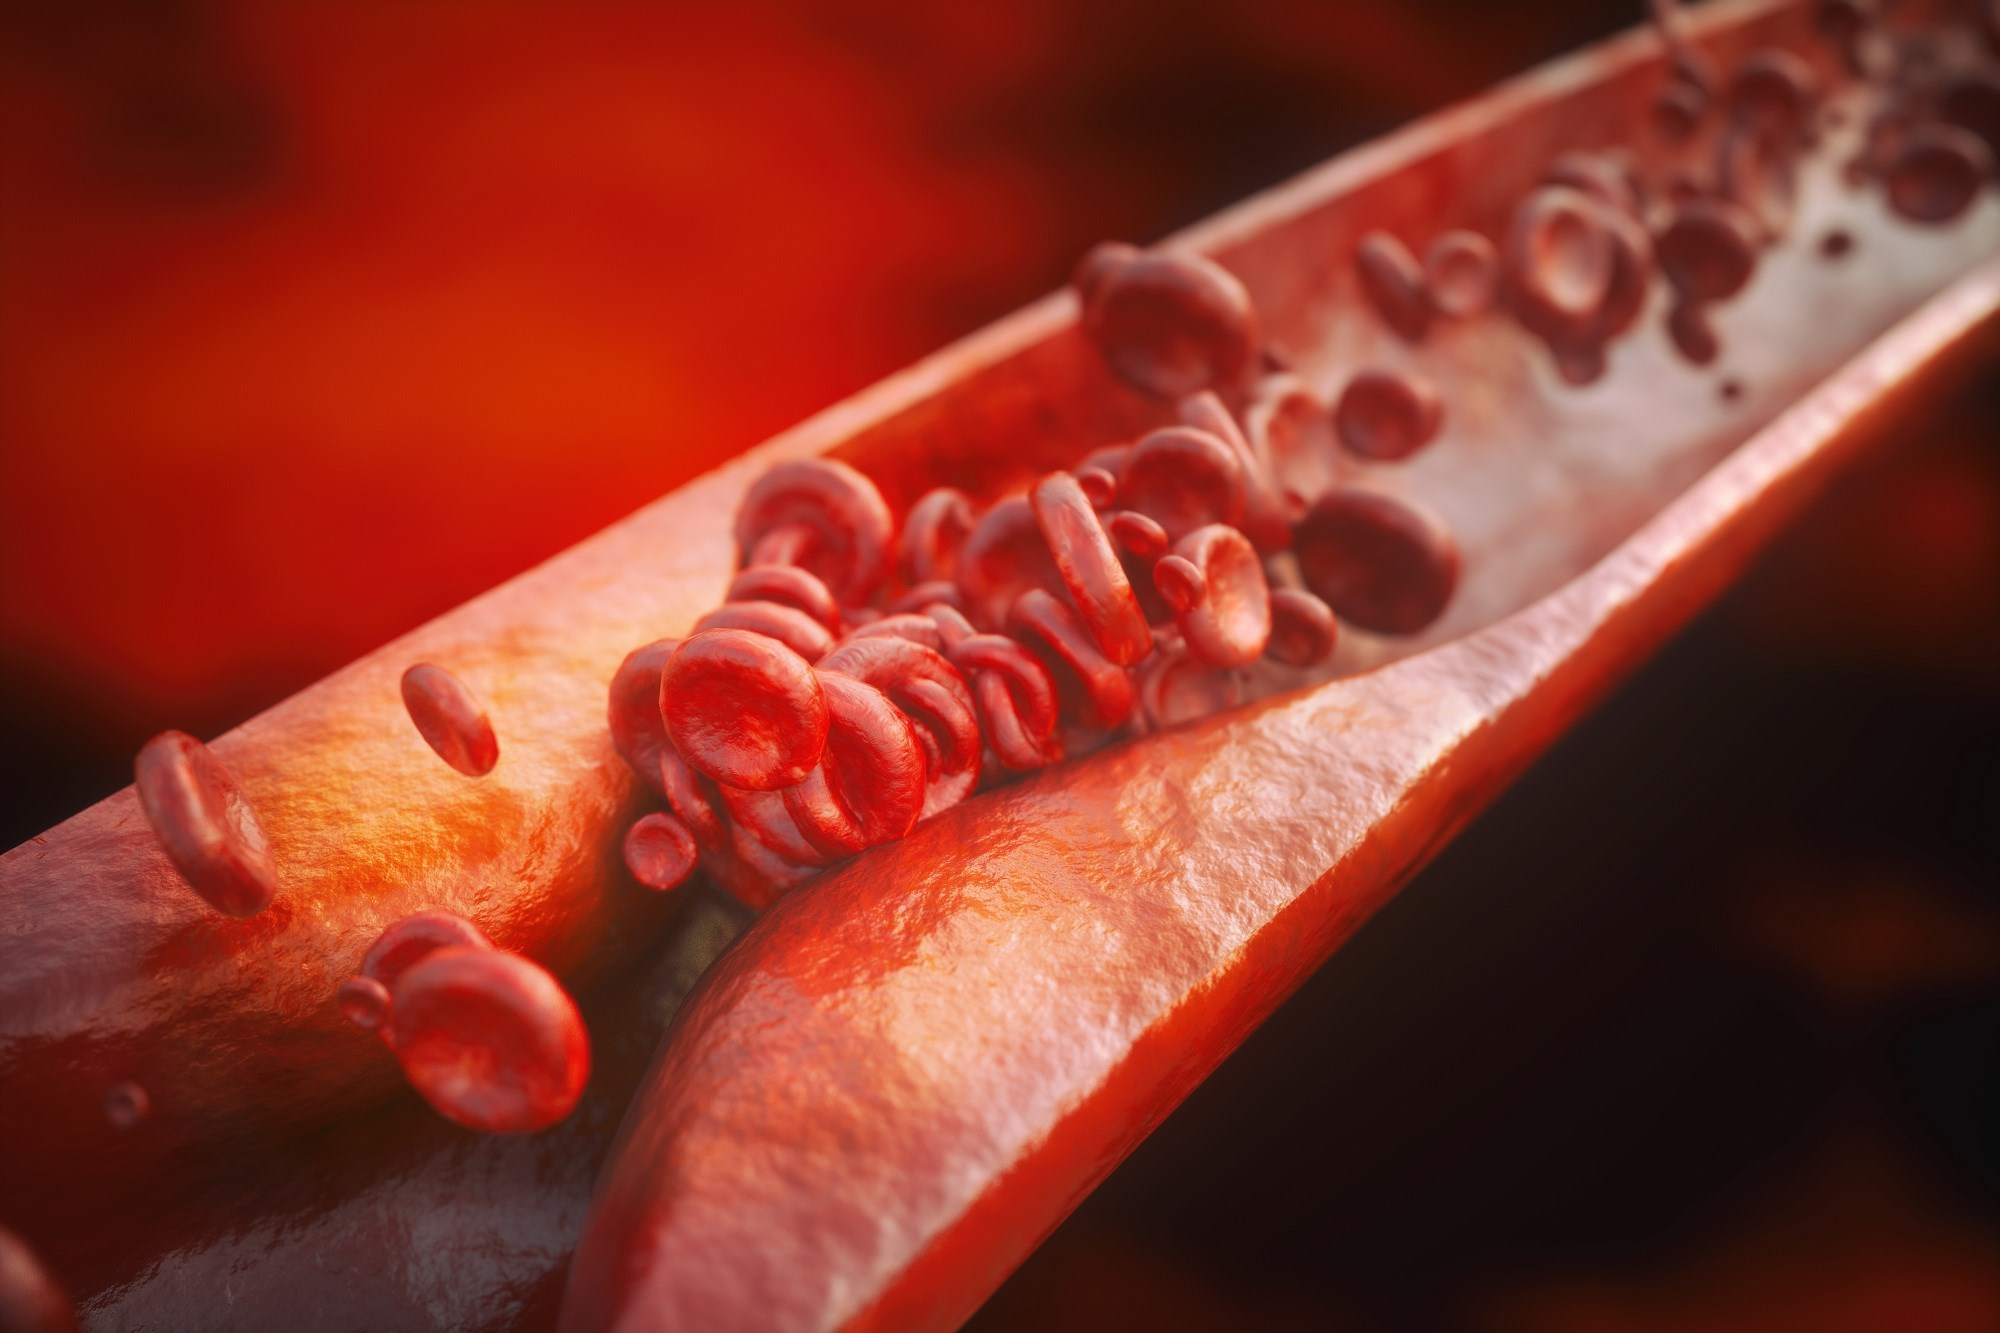 With higher plasma estradiol levels, atherosclerosis progression is decreased among early postmenopausal women and is increased among late postmenopausal women.